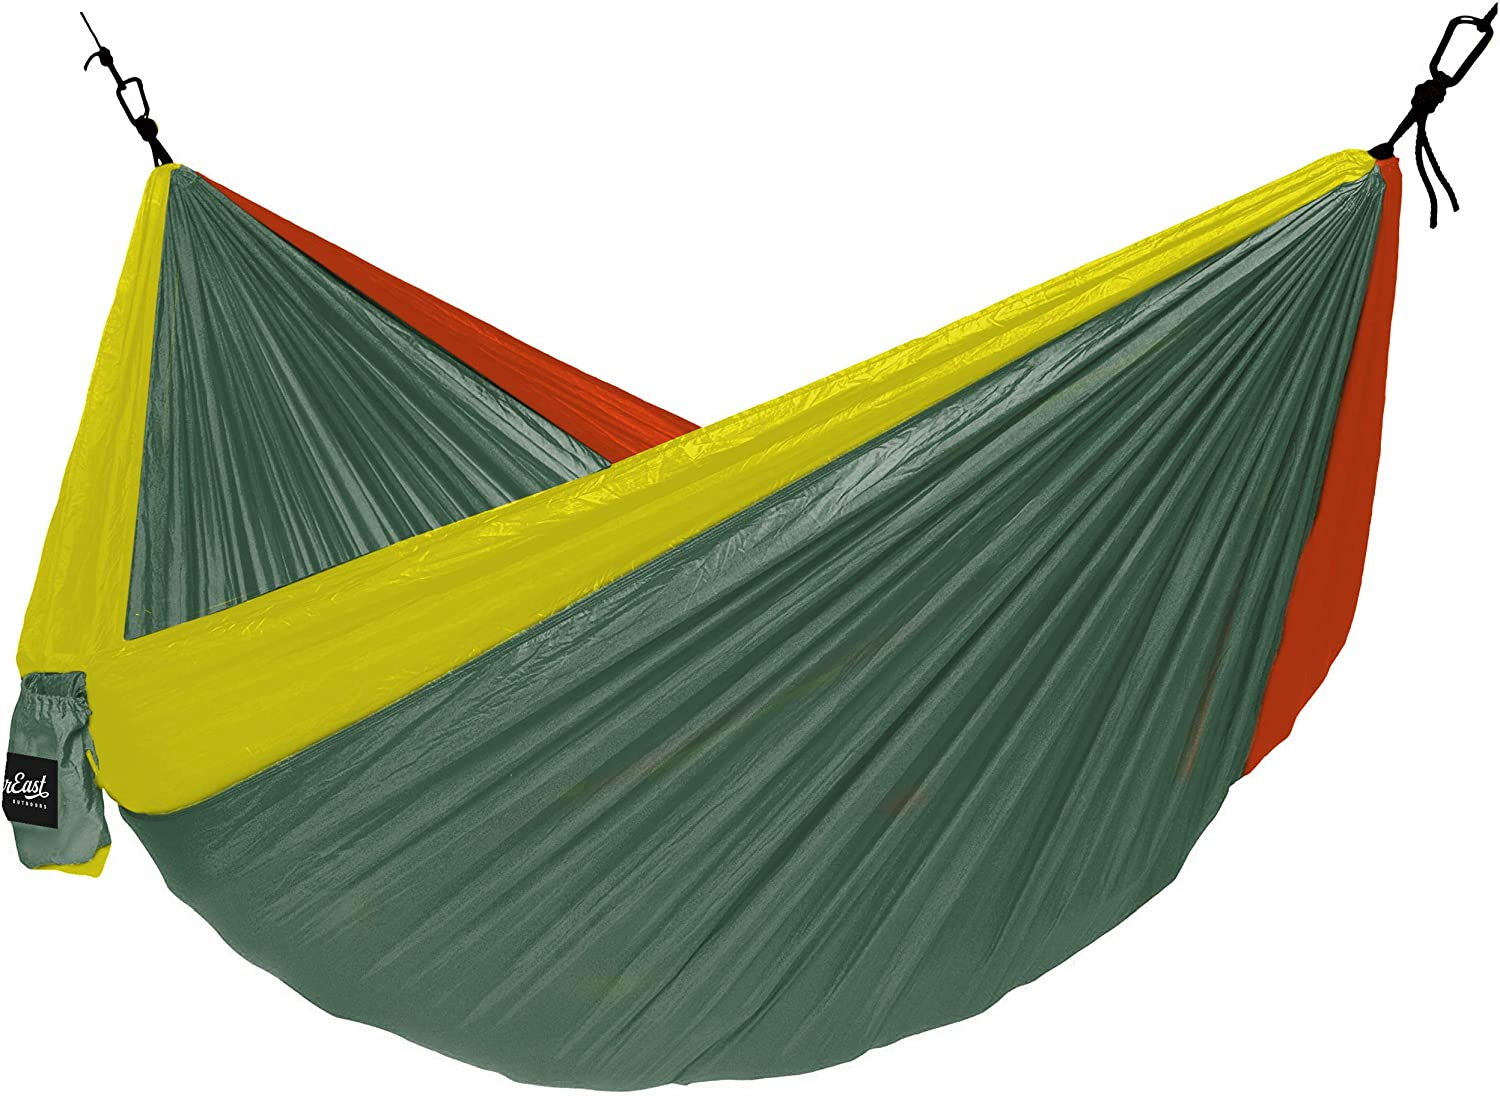 Ultra Lightweight Nylon Camping Hammock NorEast Outdoors Single Hammock Portable Easy to Set Up Paracord and Carabiner Hanging System